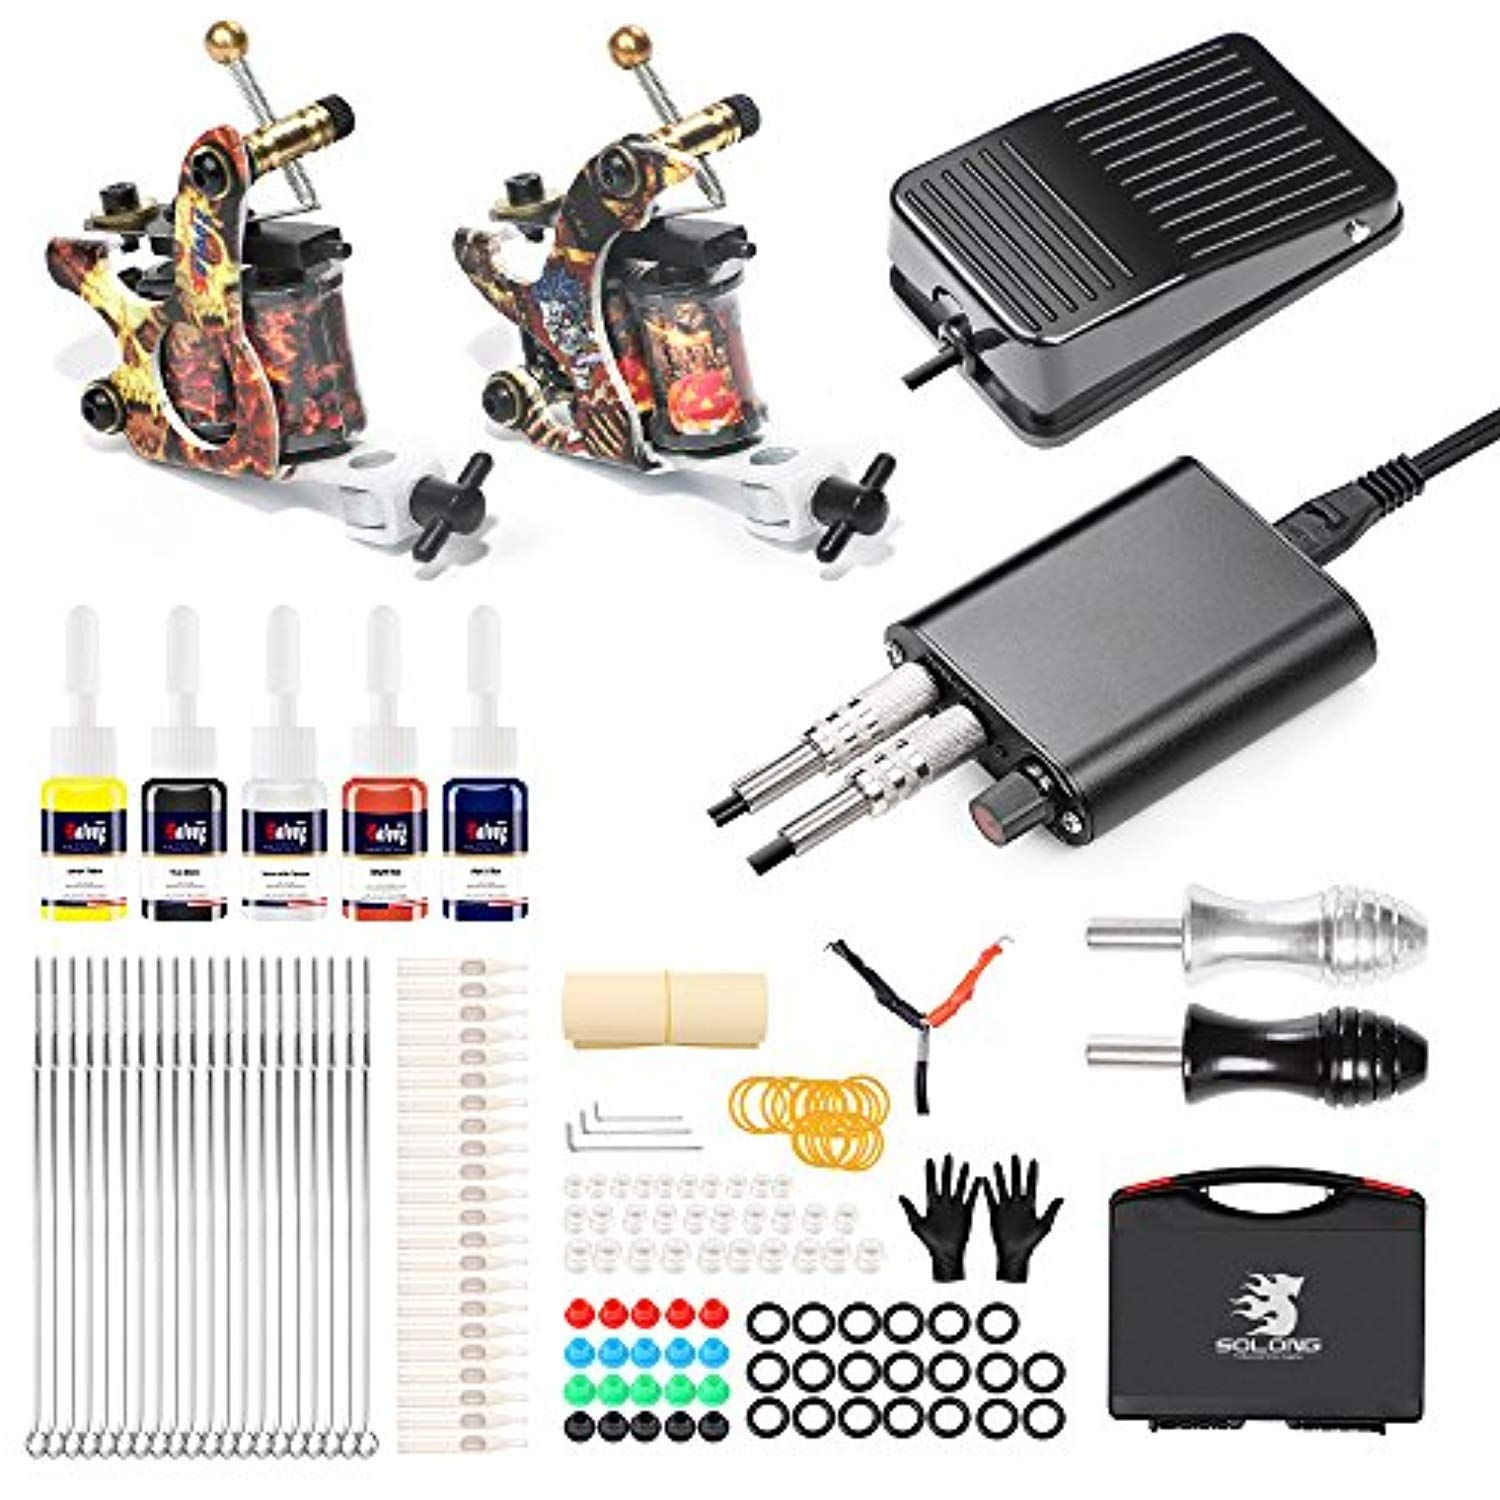 Solong Complete Tattoo Kit Professional 2 Pro Coil Tattoo Machine Starter Tattoo Kit 5 Tattoo Inks Power Su With Images Tattoo Kits Professional Tattoo Kits Tattoo Machine